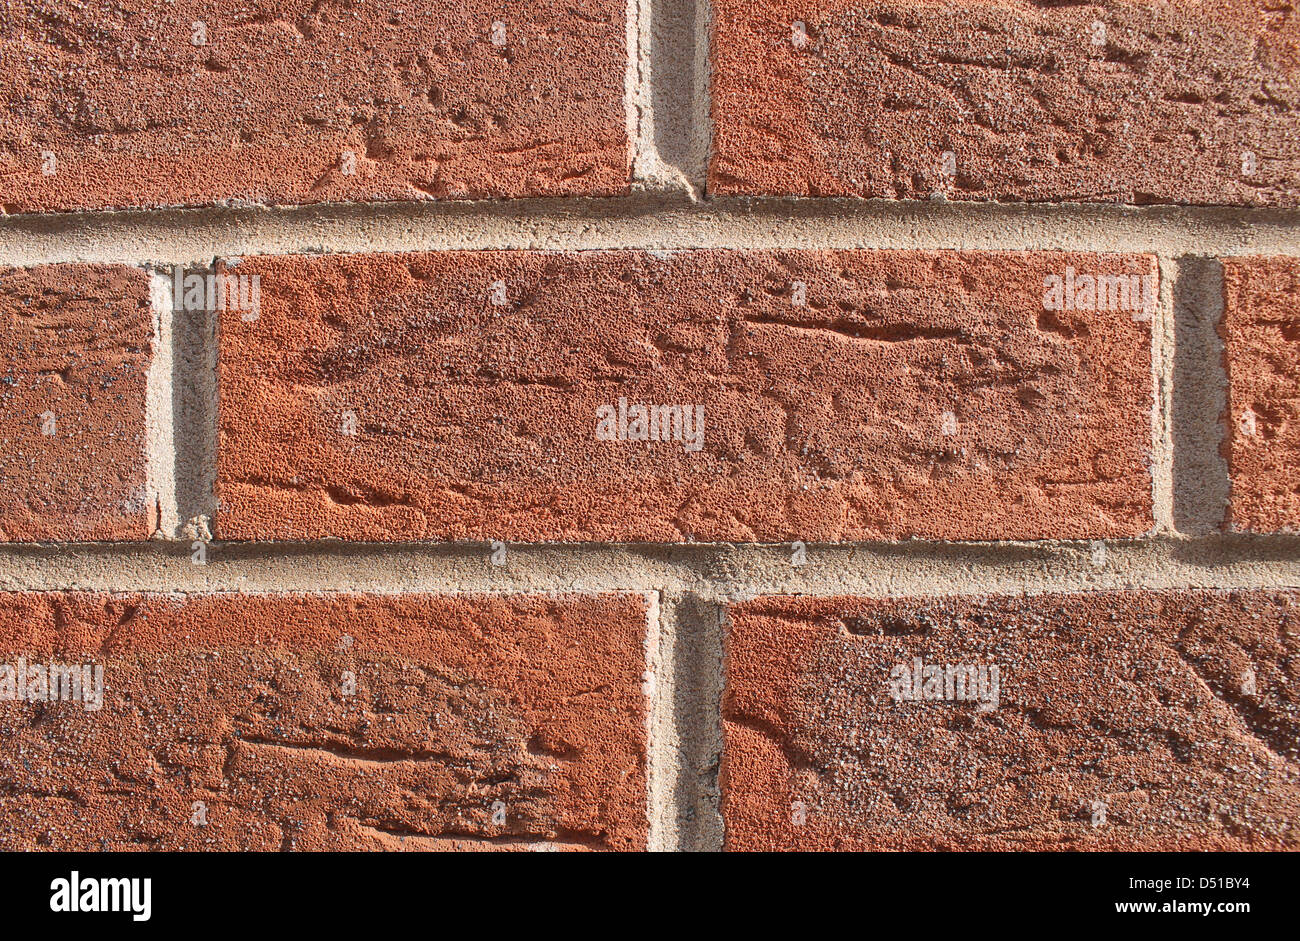 Abstract textured background of red brick wall. - Stock Image